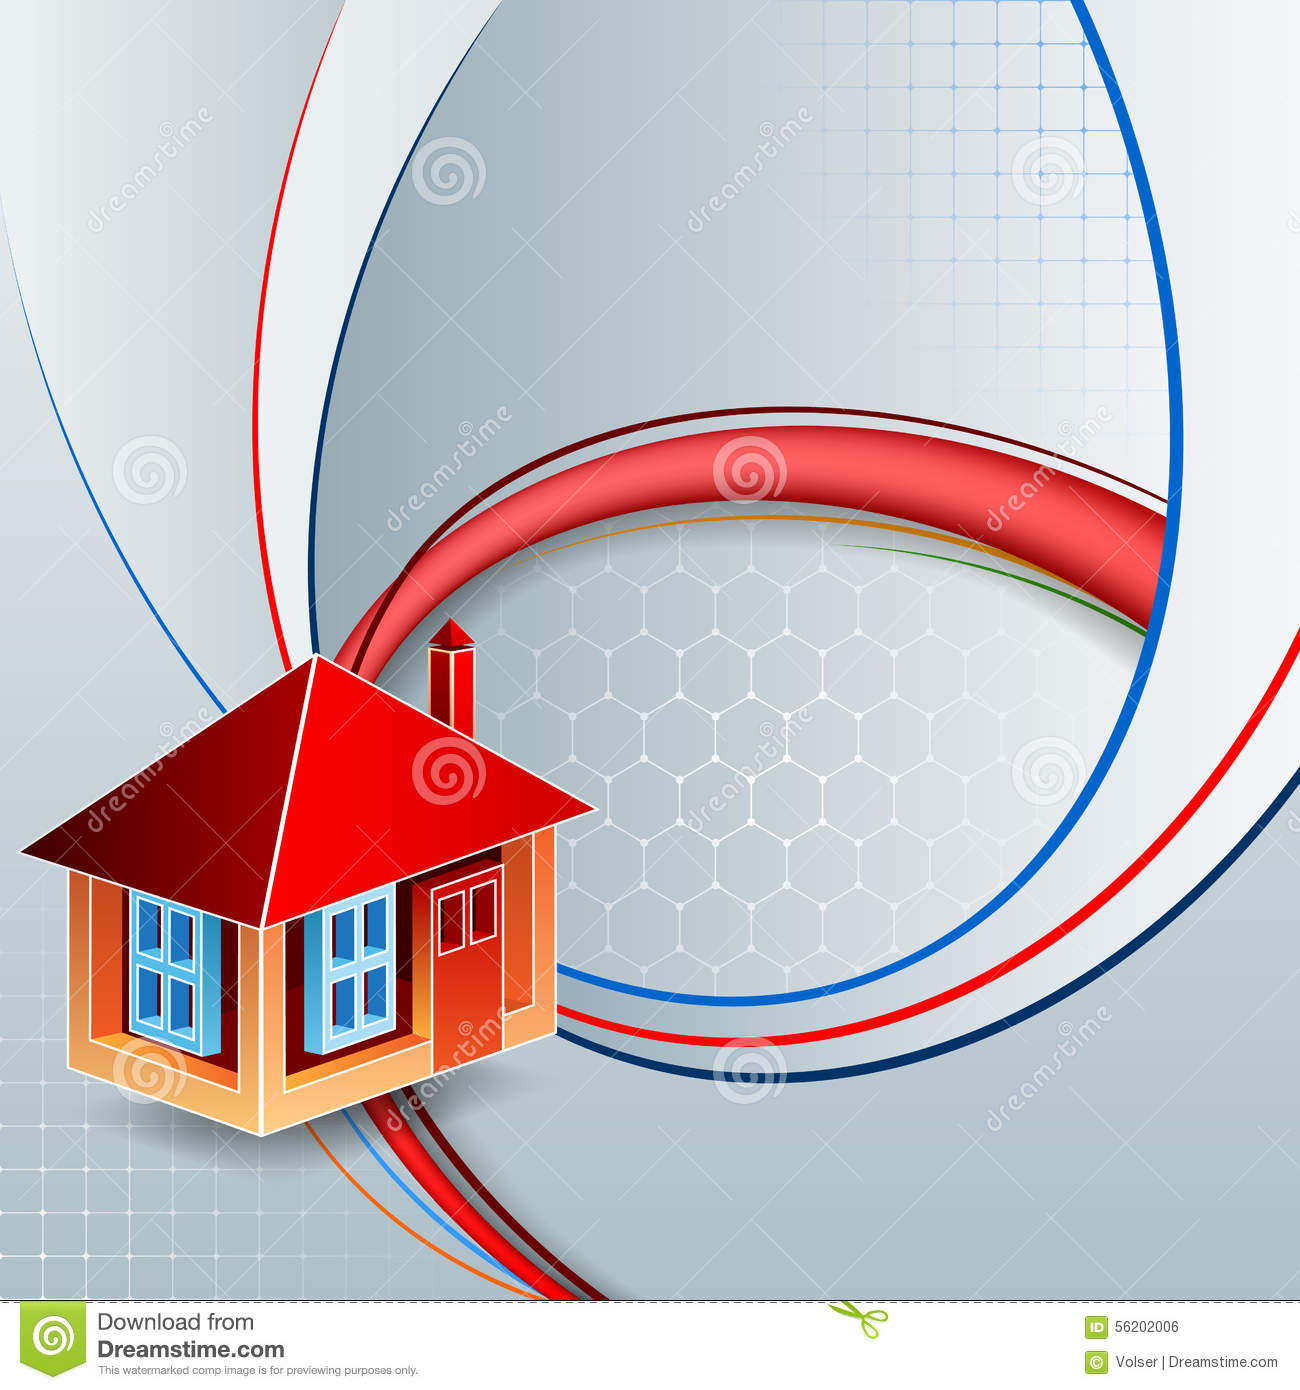 Design Template With Three Dimensions Stylized House On Linear